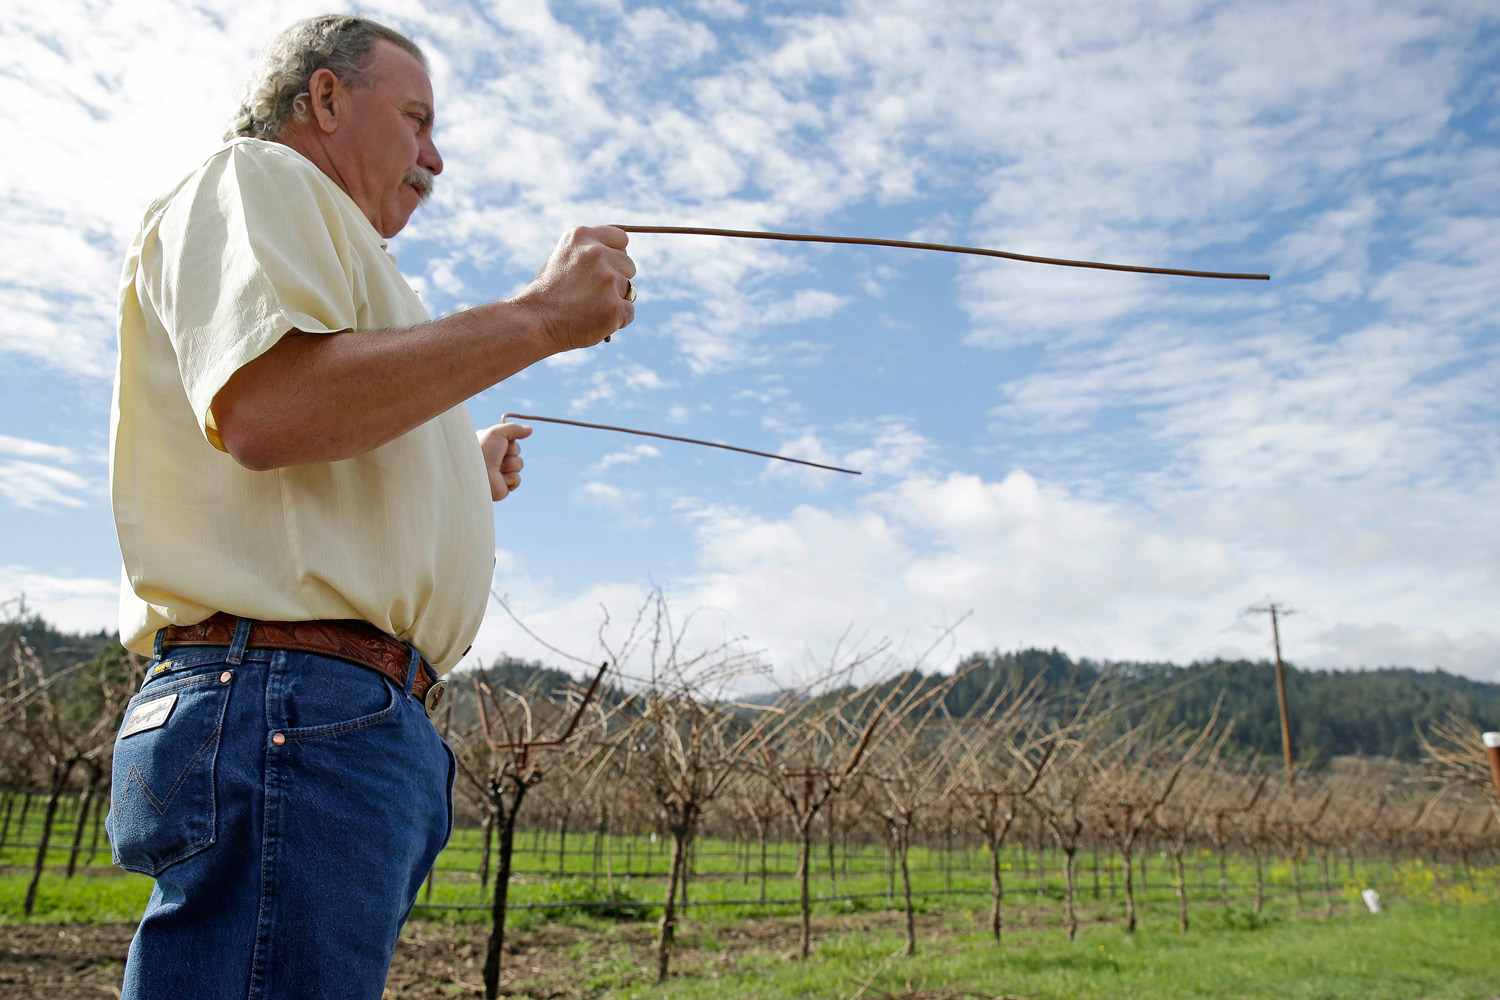 Proprietor Marc Mondavi demonstrates dowsing with  diving rods  to locate water at the Charles Krug winery in St. Helena, Calif.